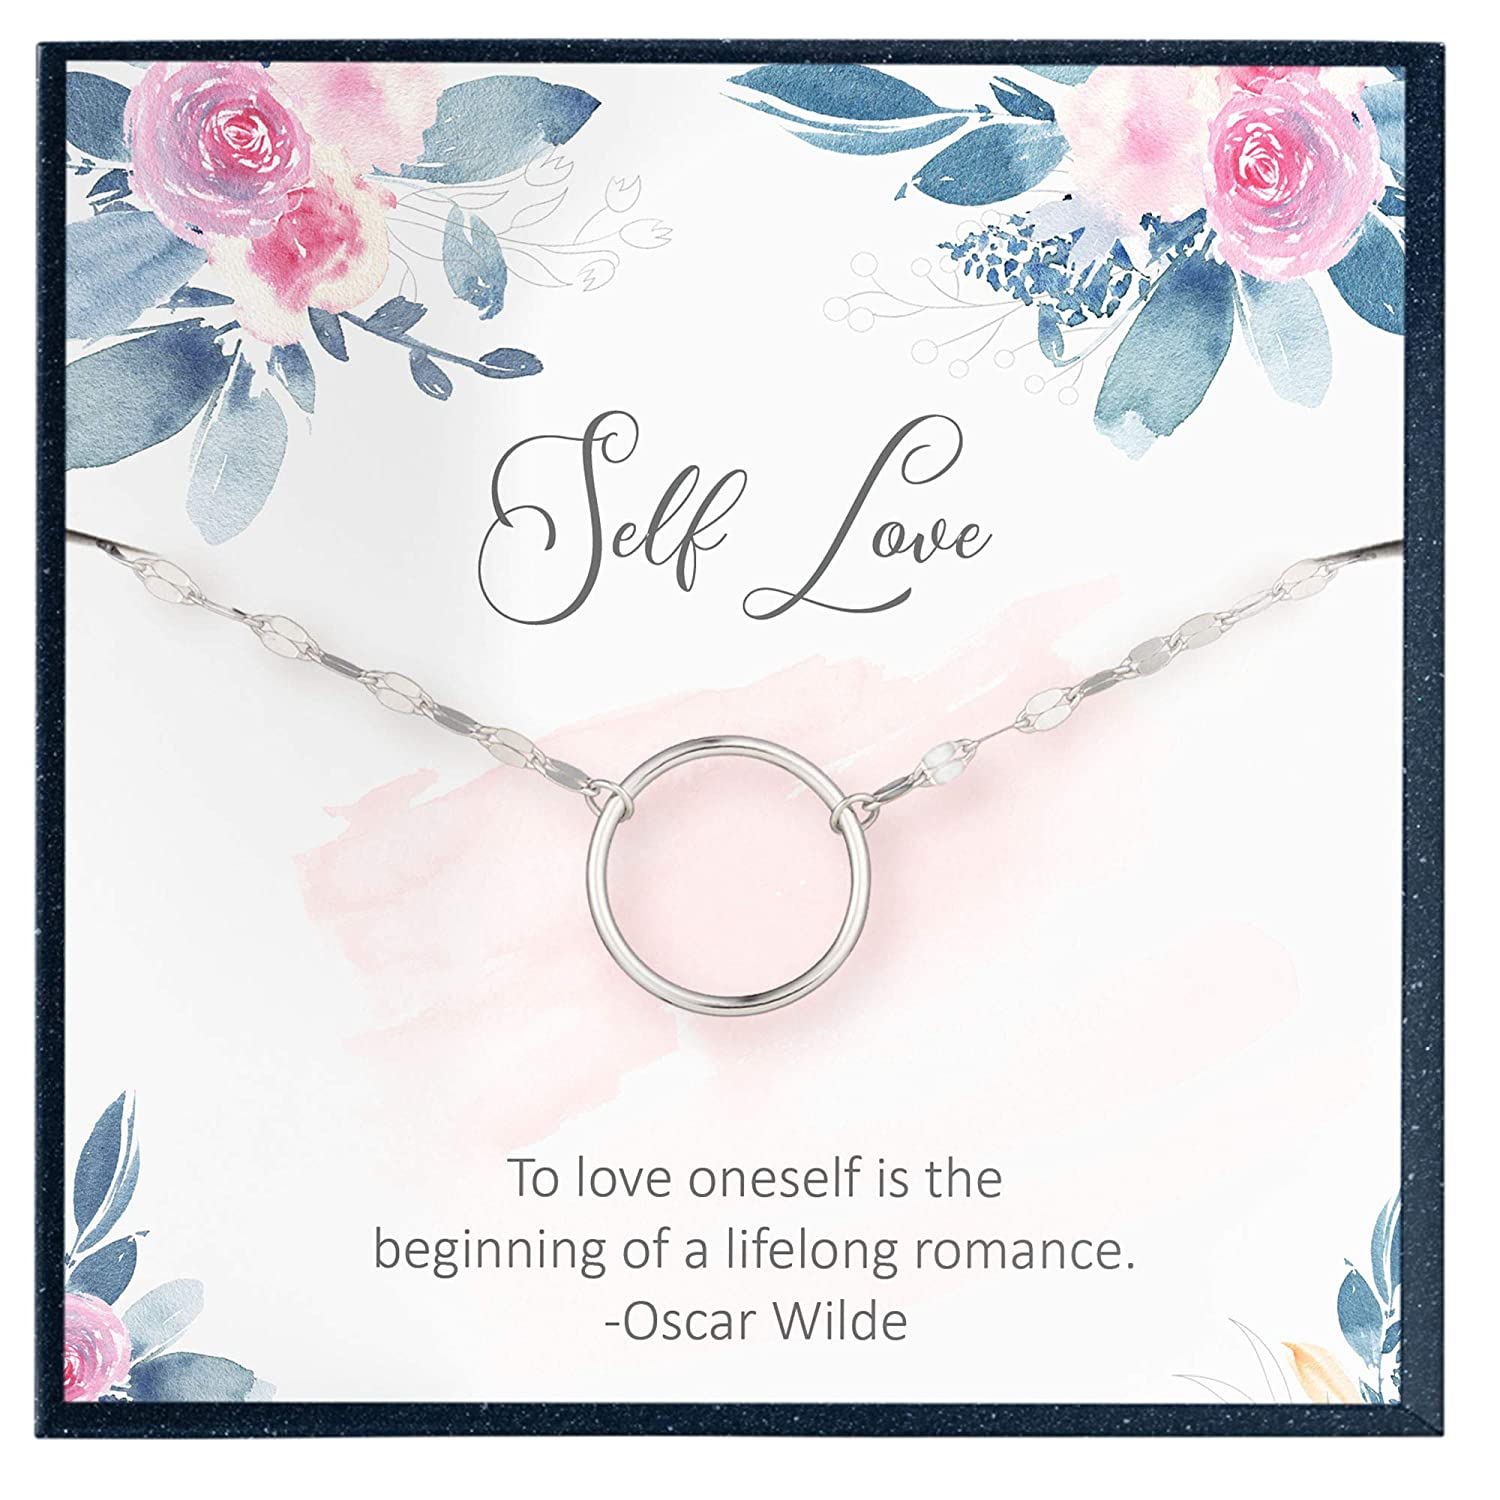 Self Care Gifts for Women Self Love Distress Gifts for People with Depression Mental Health Gifts Women Empowerment Mindfulness Gifts for Women